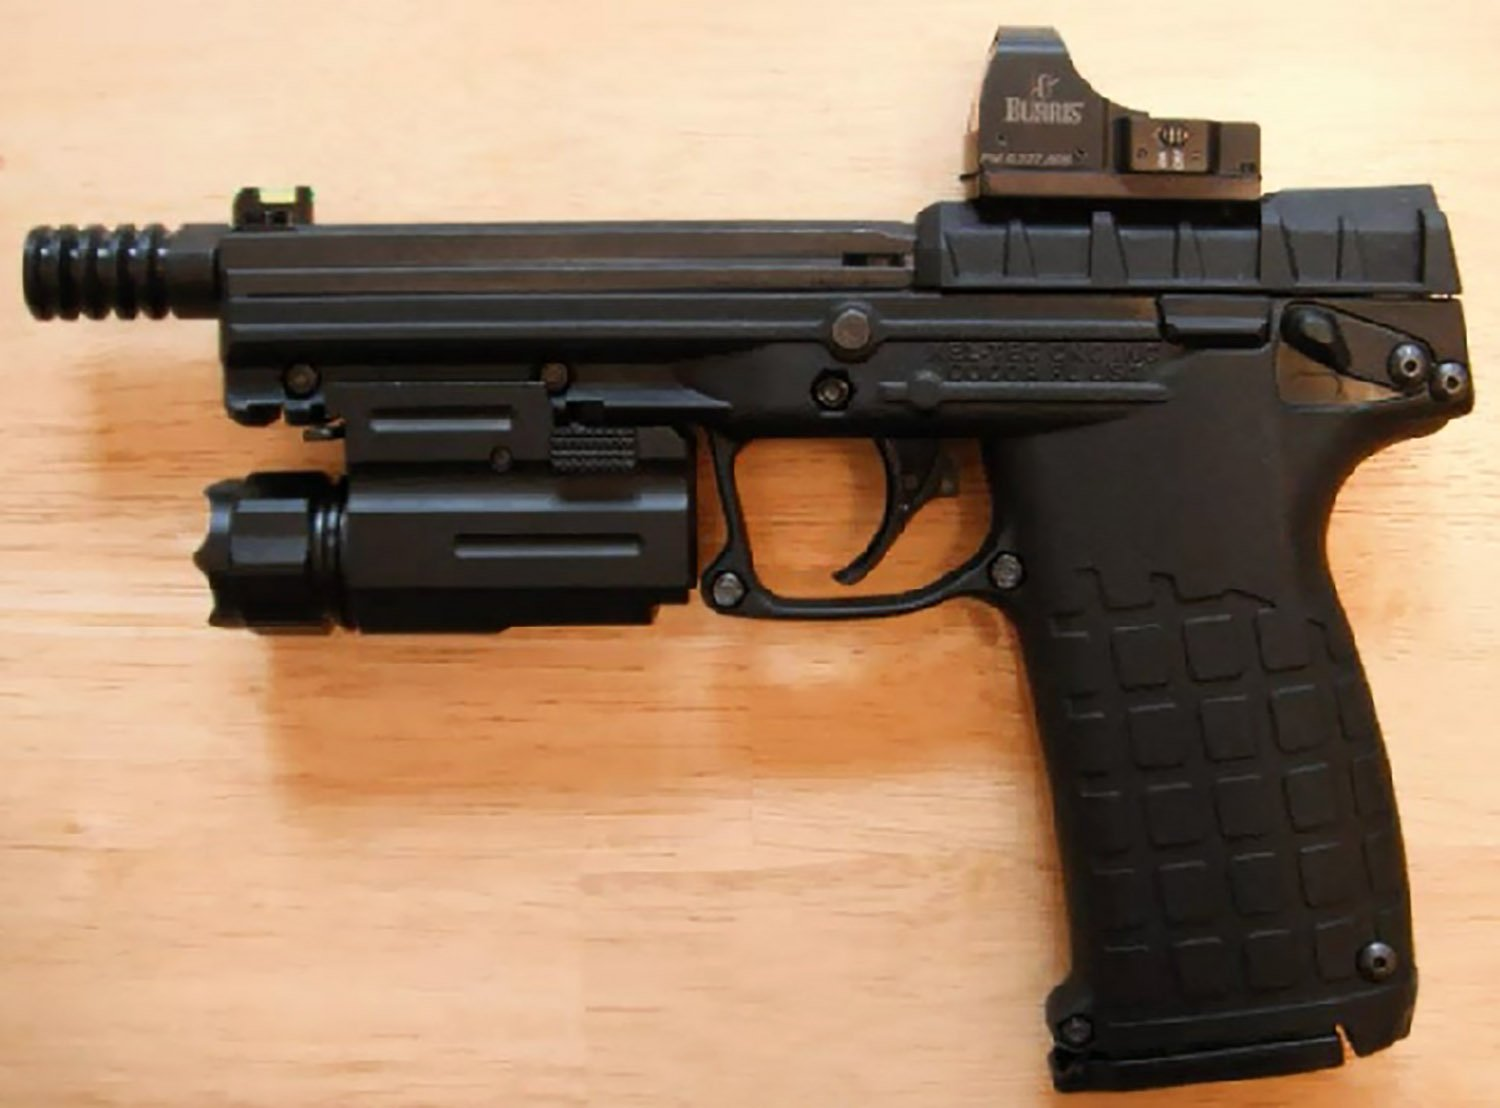 The Kel-Tec PMR-30: The Most Deadly Handgun on the Planet? | The